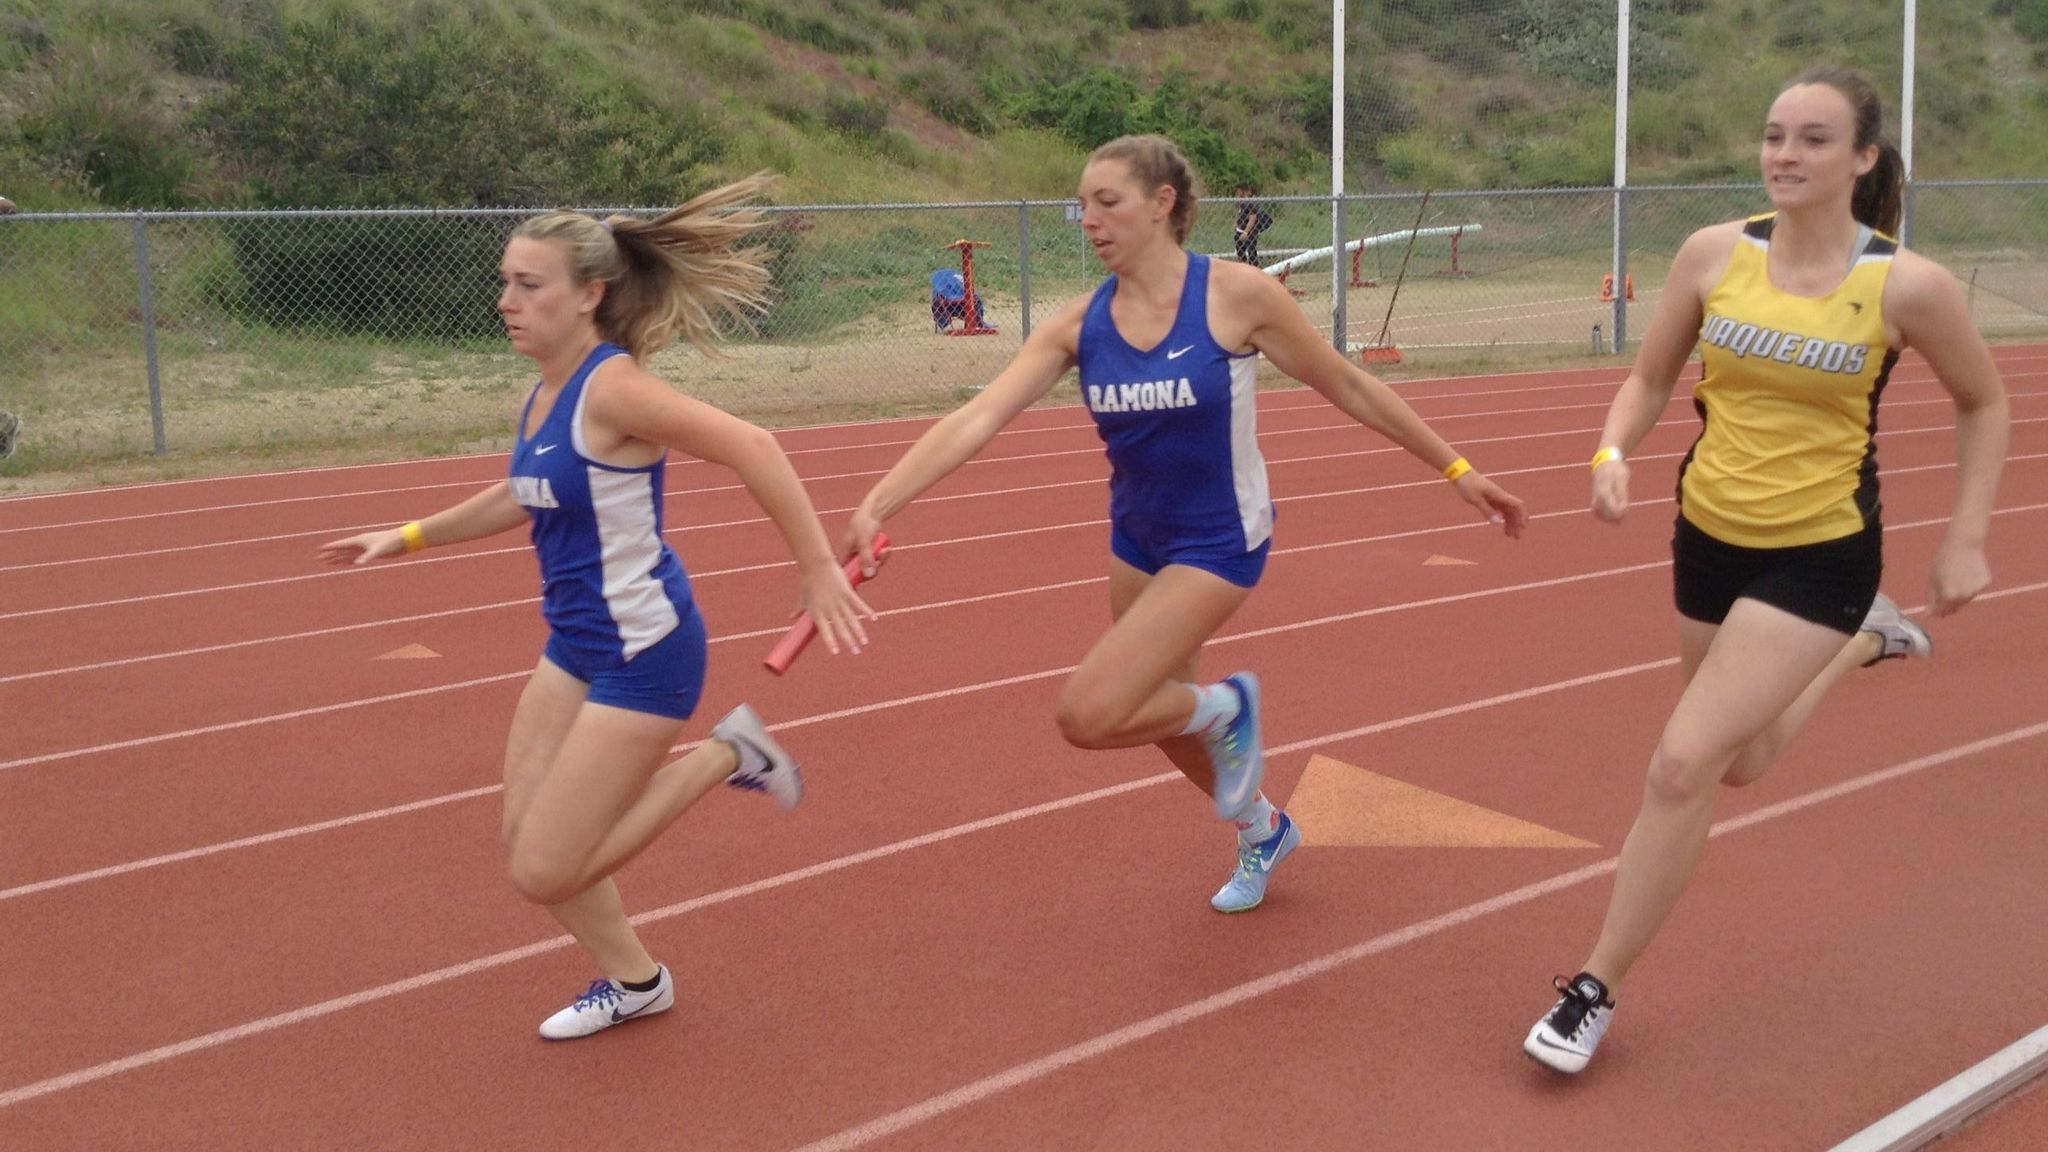 Tuesday Christopher hands the baton to Amber Cogbill en route to their season best 4x100 time of 51.79.